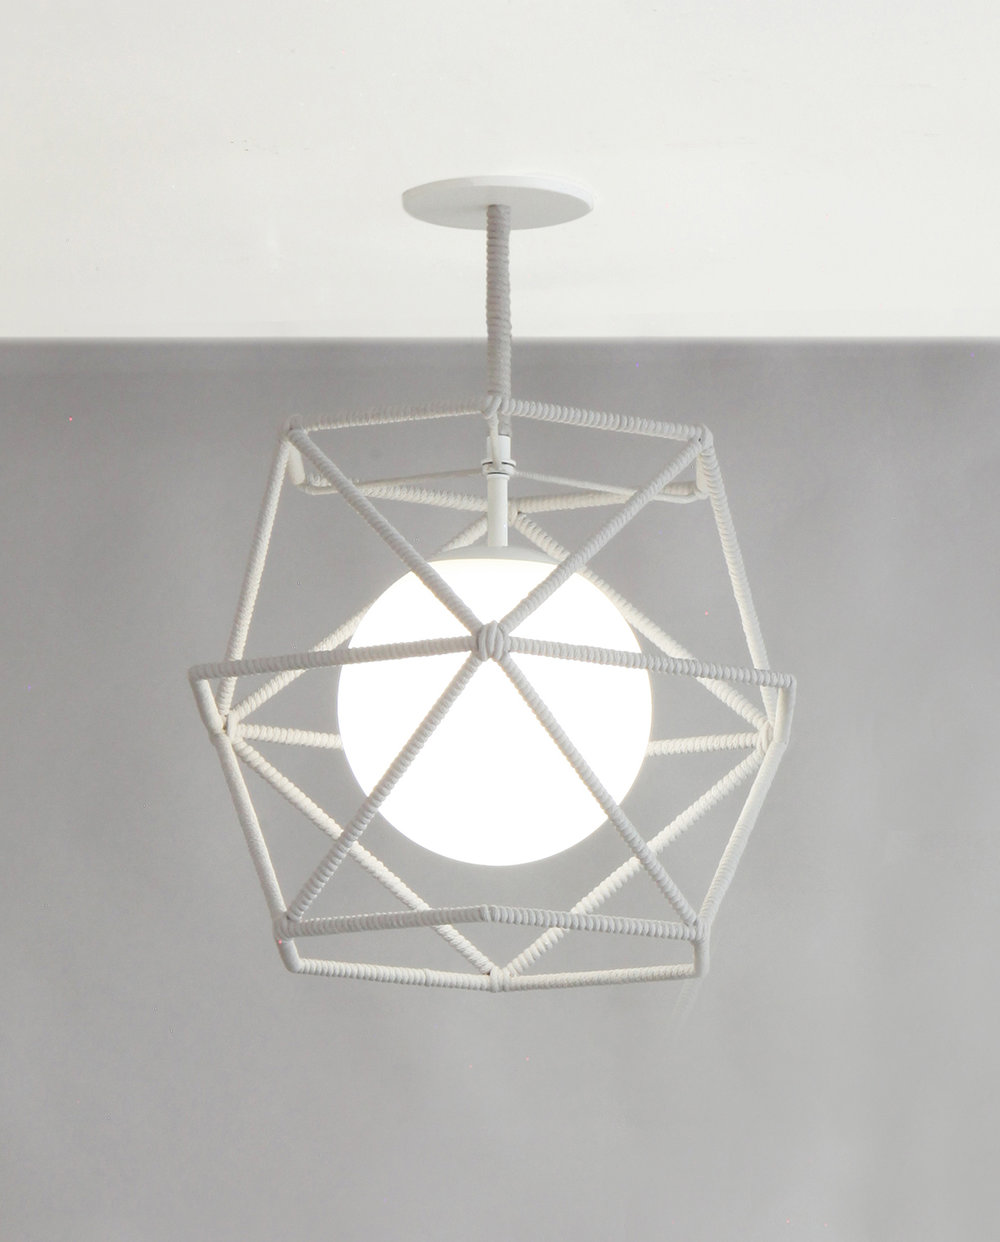 Rope_C-214_Hexagonal Cage Rope Ceiling Fixture_White_Light Grey_on.jpg